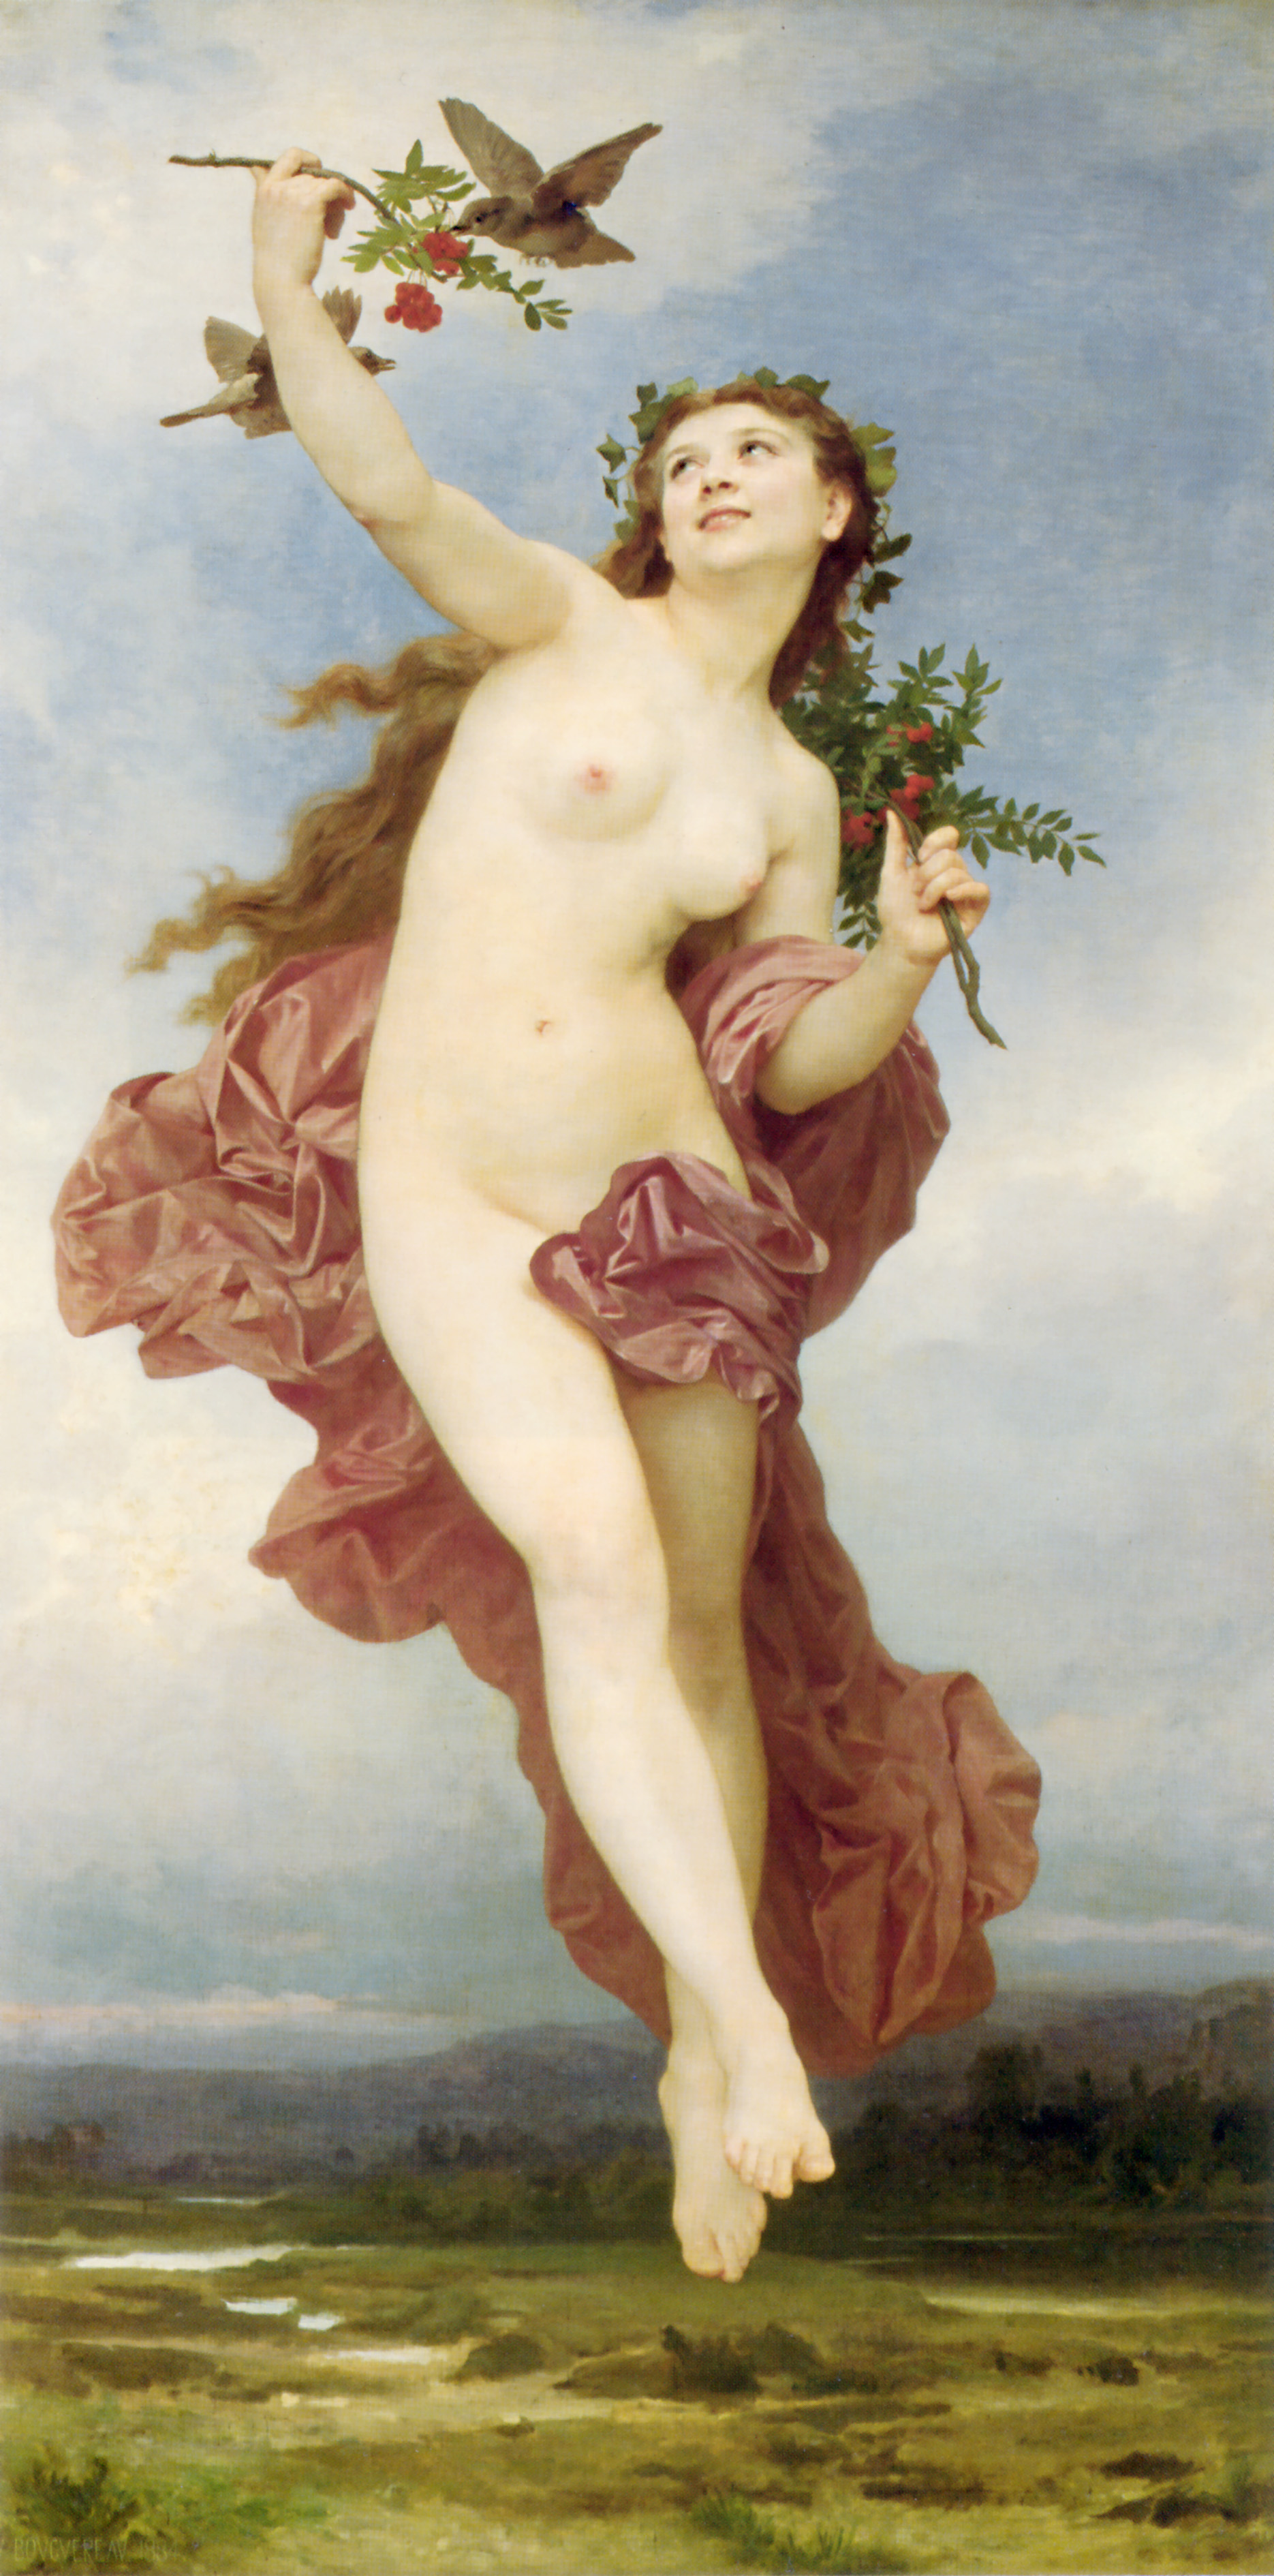 http://upload.wikimedia.org/wikipedia/commons/d/d3/William-Adolphe_Bouguereau_%281825-1905%29_-_Day_%281881%29.jpg